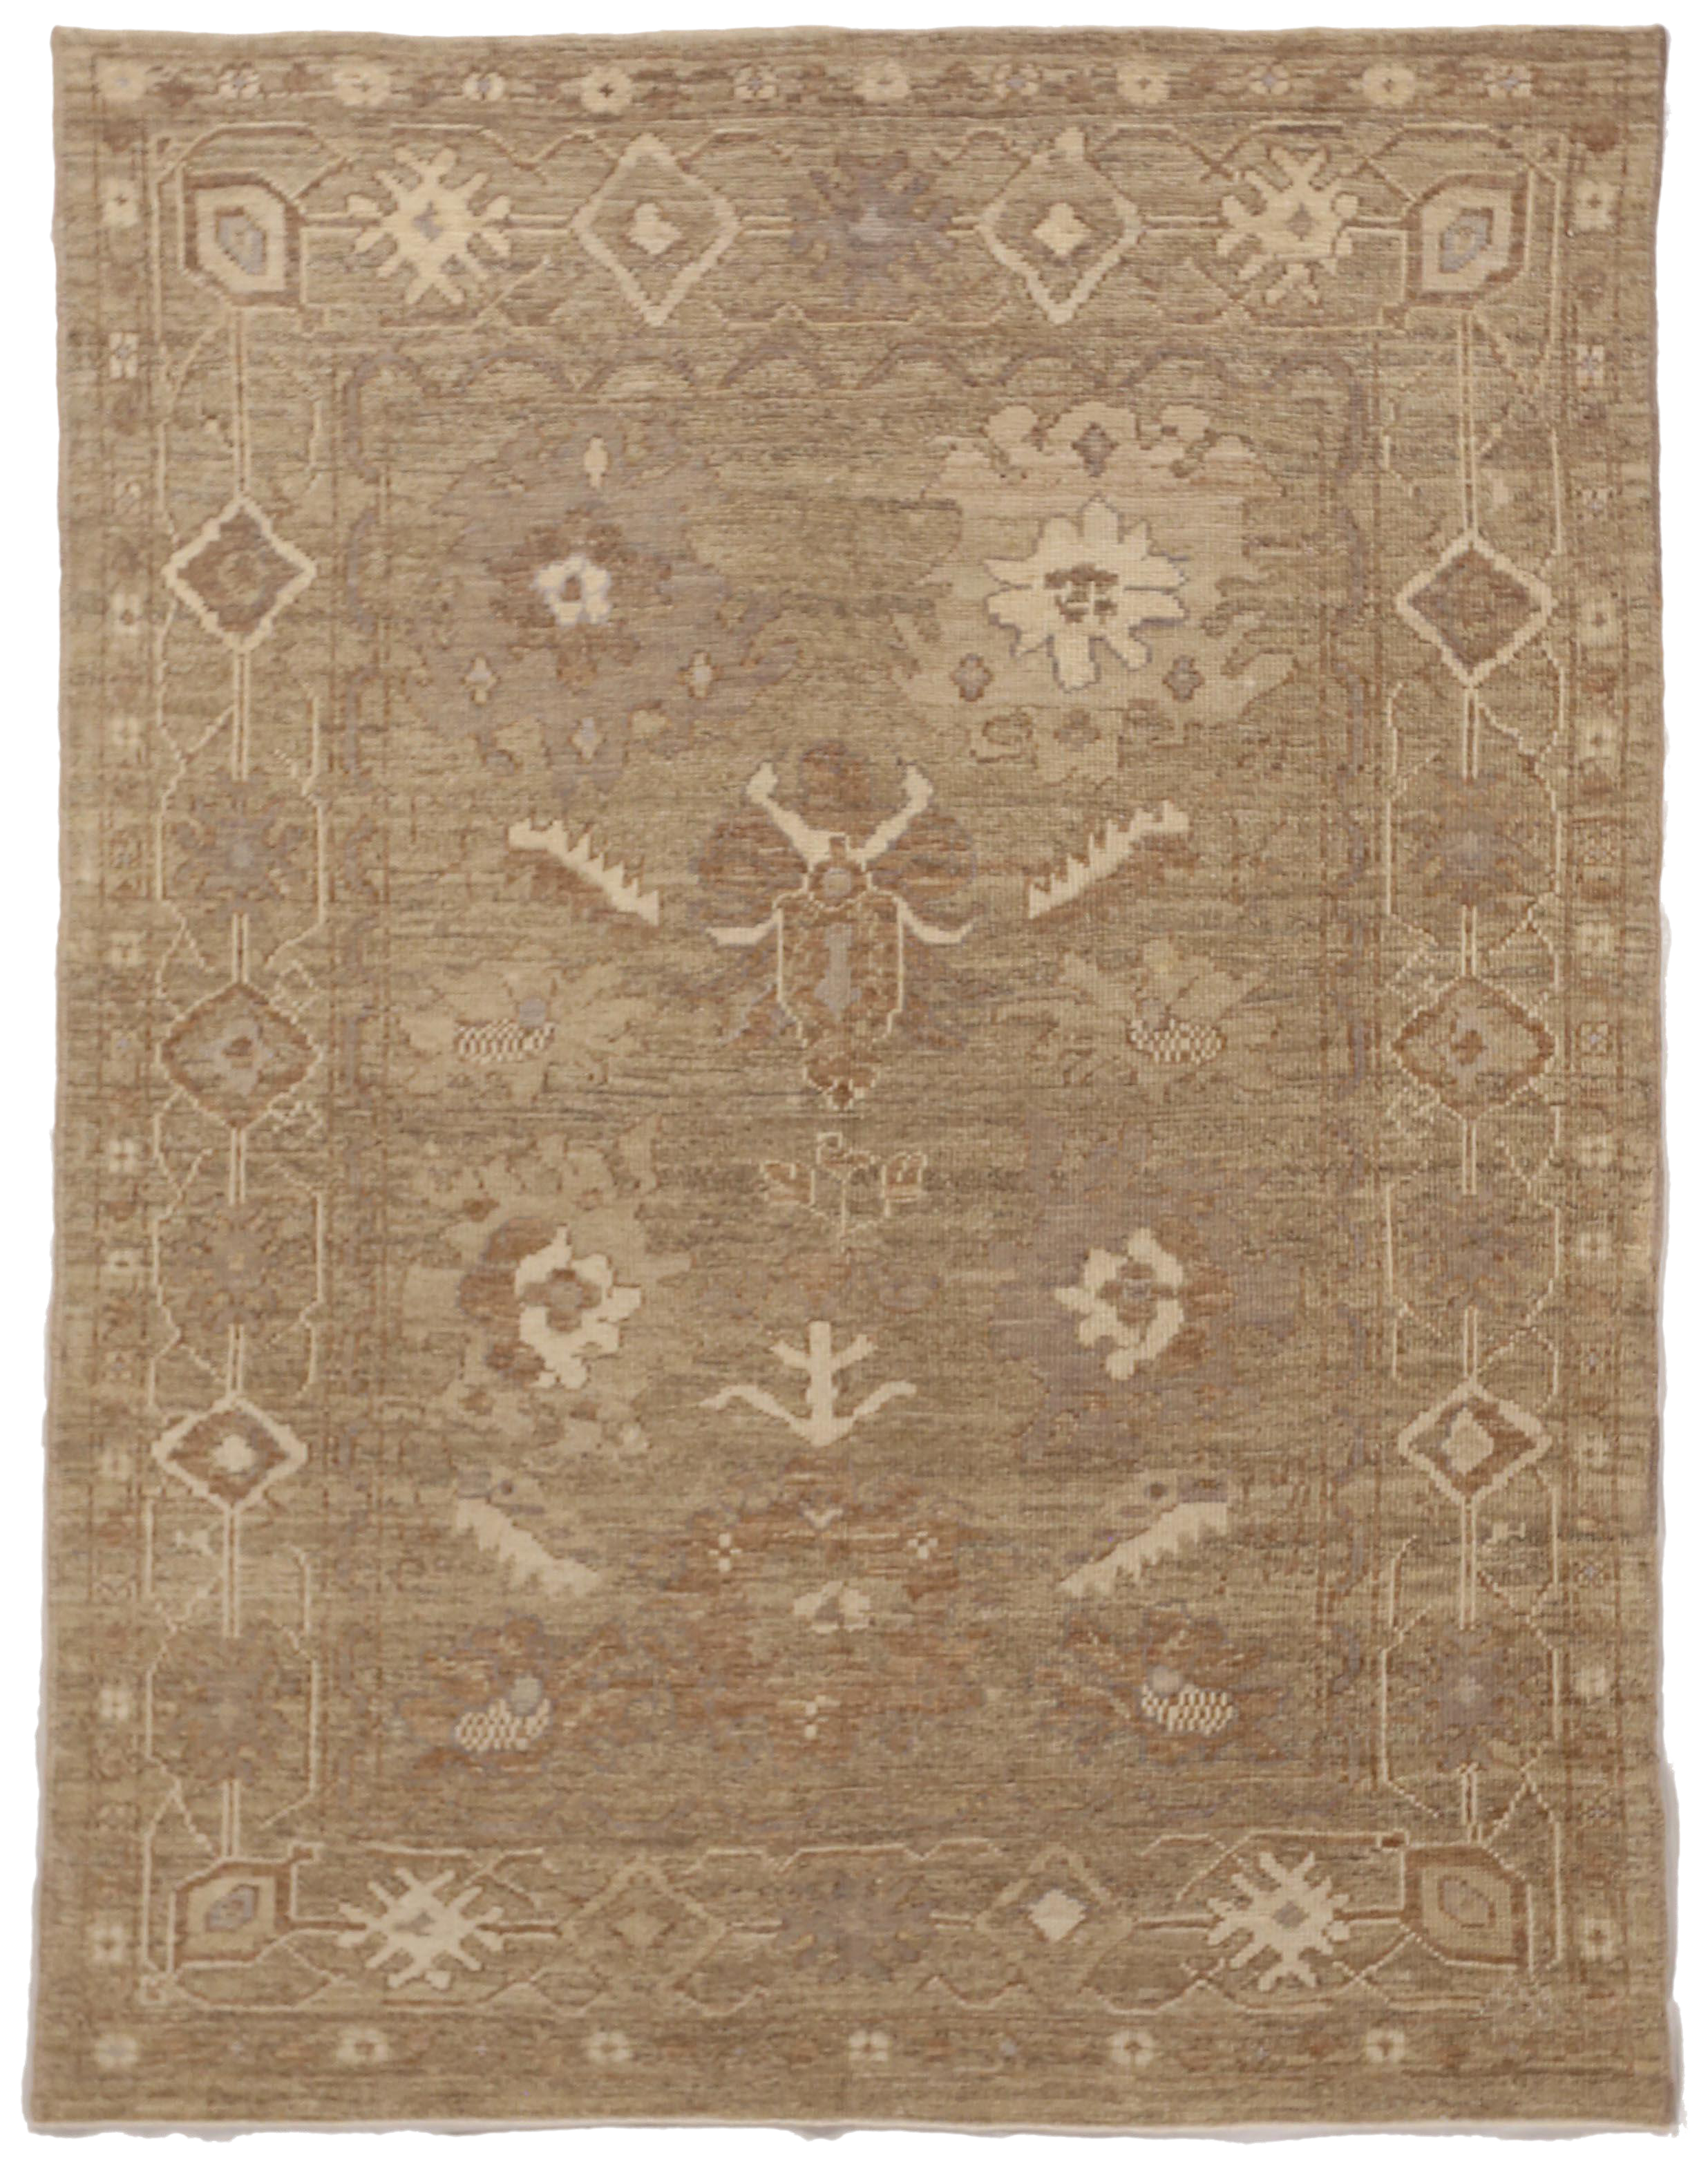 Contemporary Oushak Persian Rug With Mixed Floral And Geometric Designs